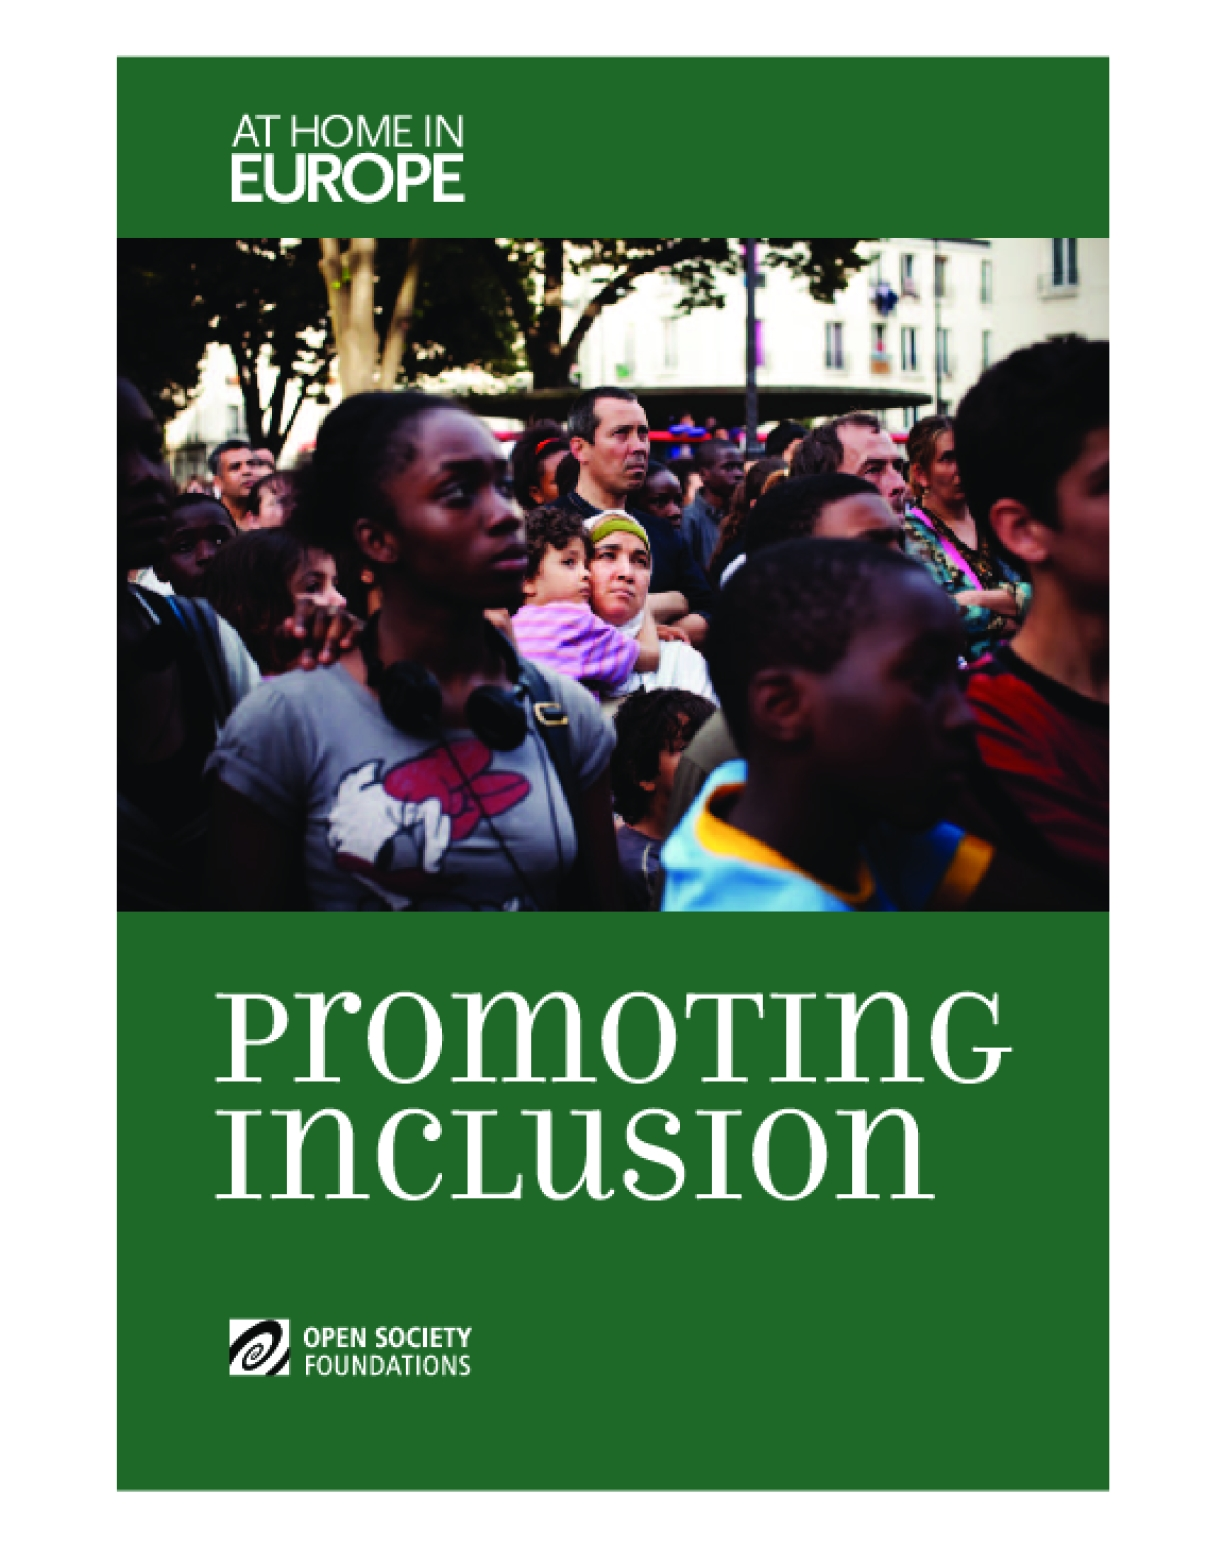 At Home in Europe: Promoting Inclusion